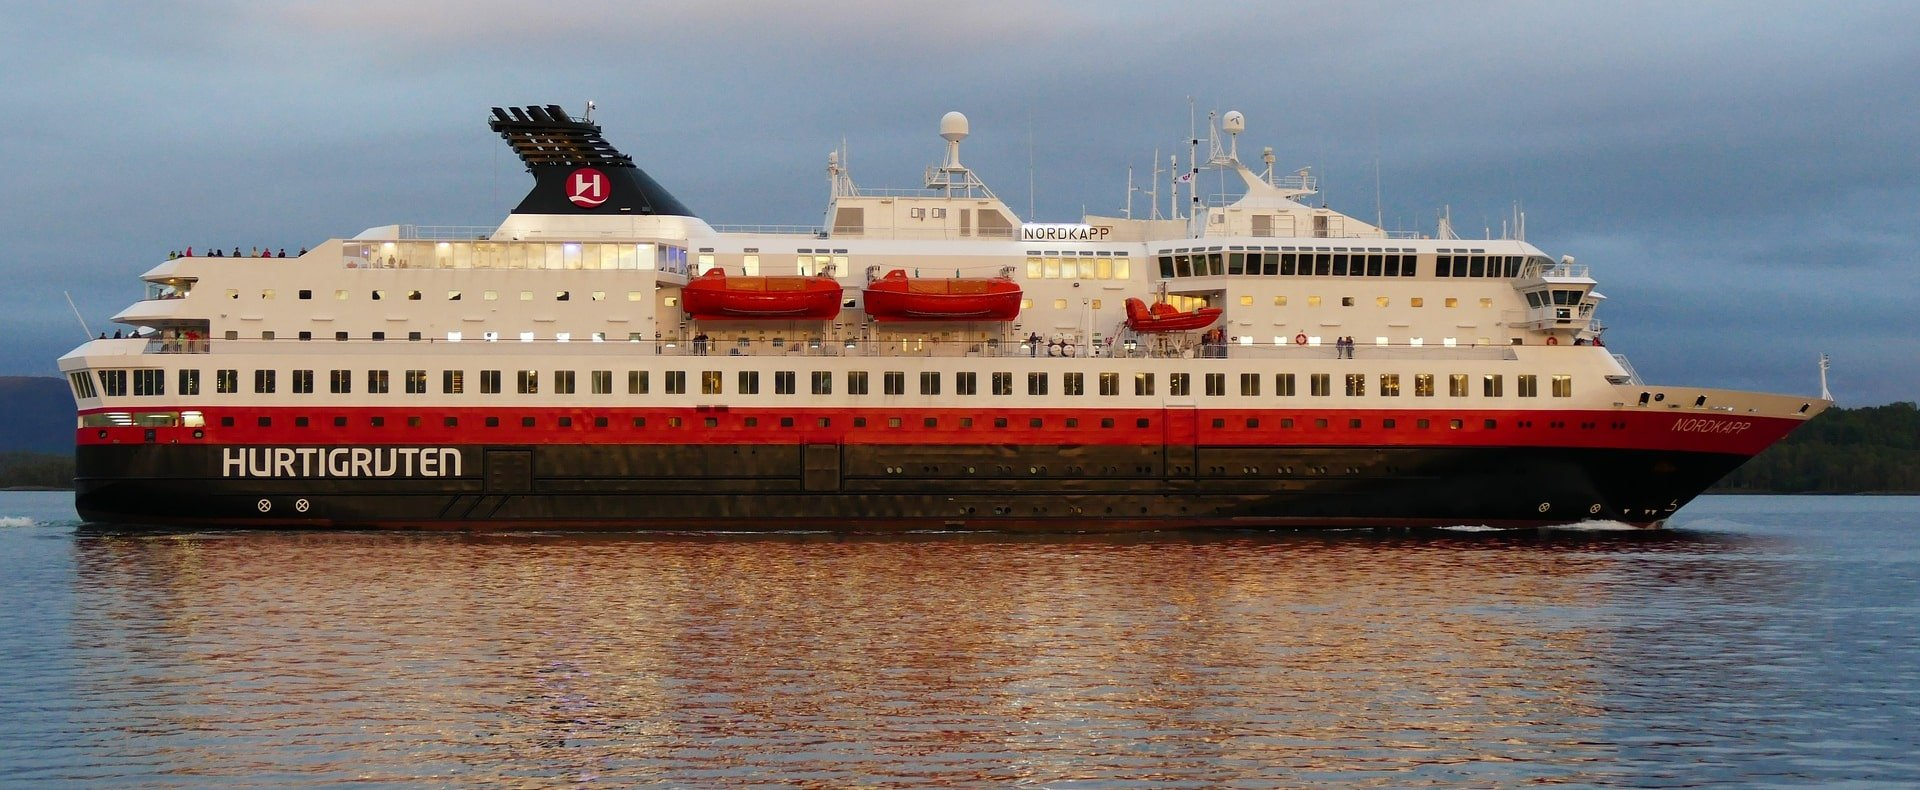 Hurtigruten coastal voyage Bergen to Kirkenes, Norway